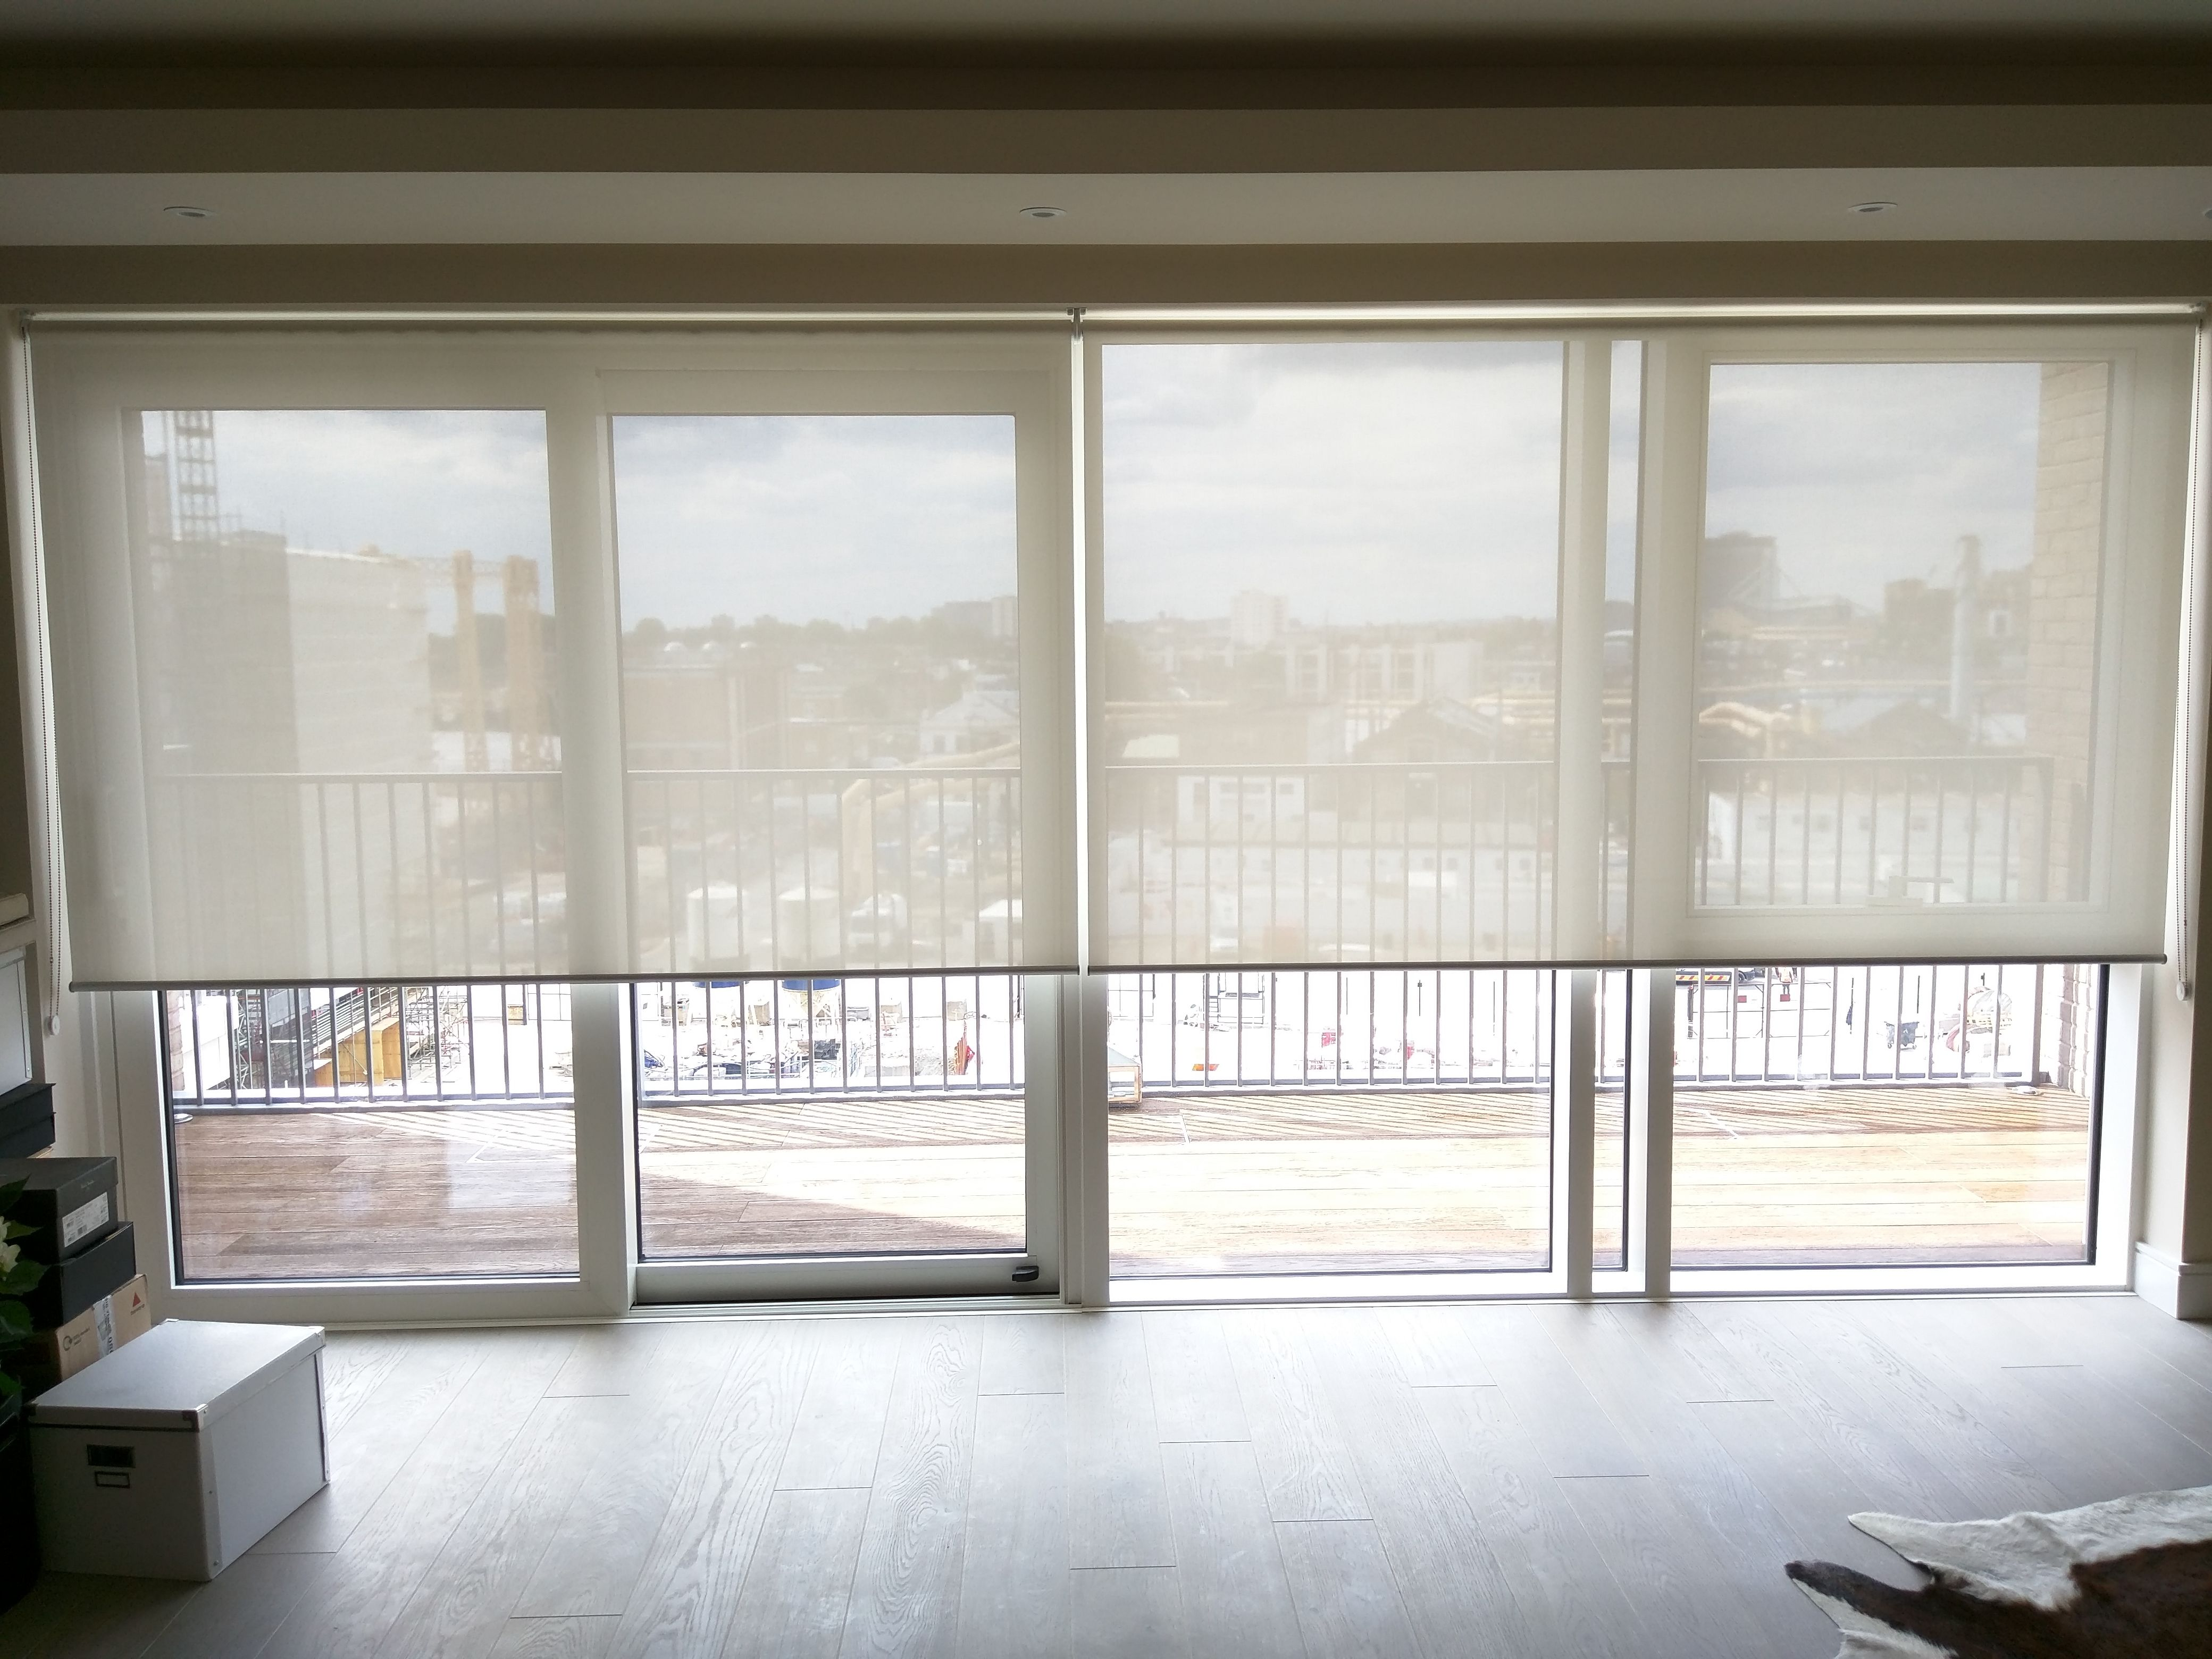 Cheap Roller Blinds Melbourne Sunscreen Roller Blinds Floor To Ceiling Windows Window